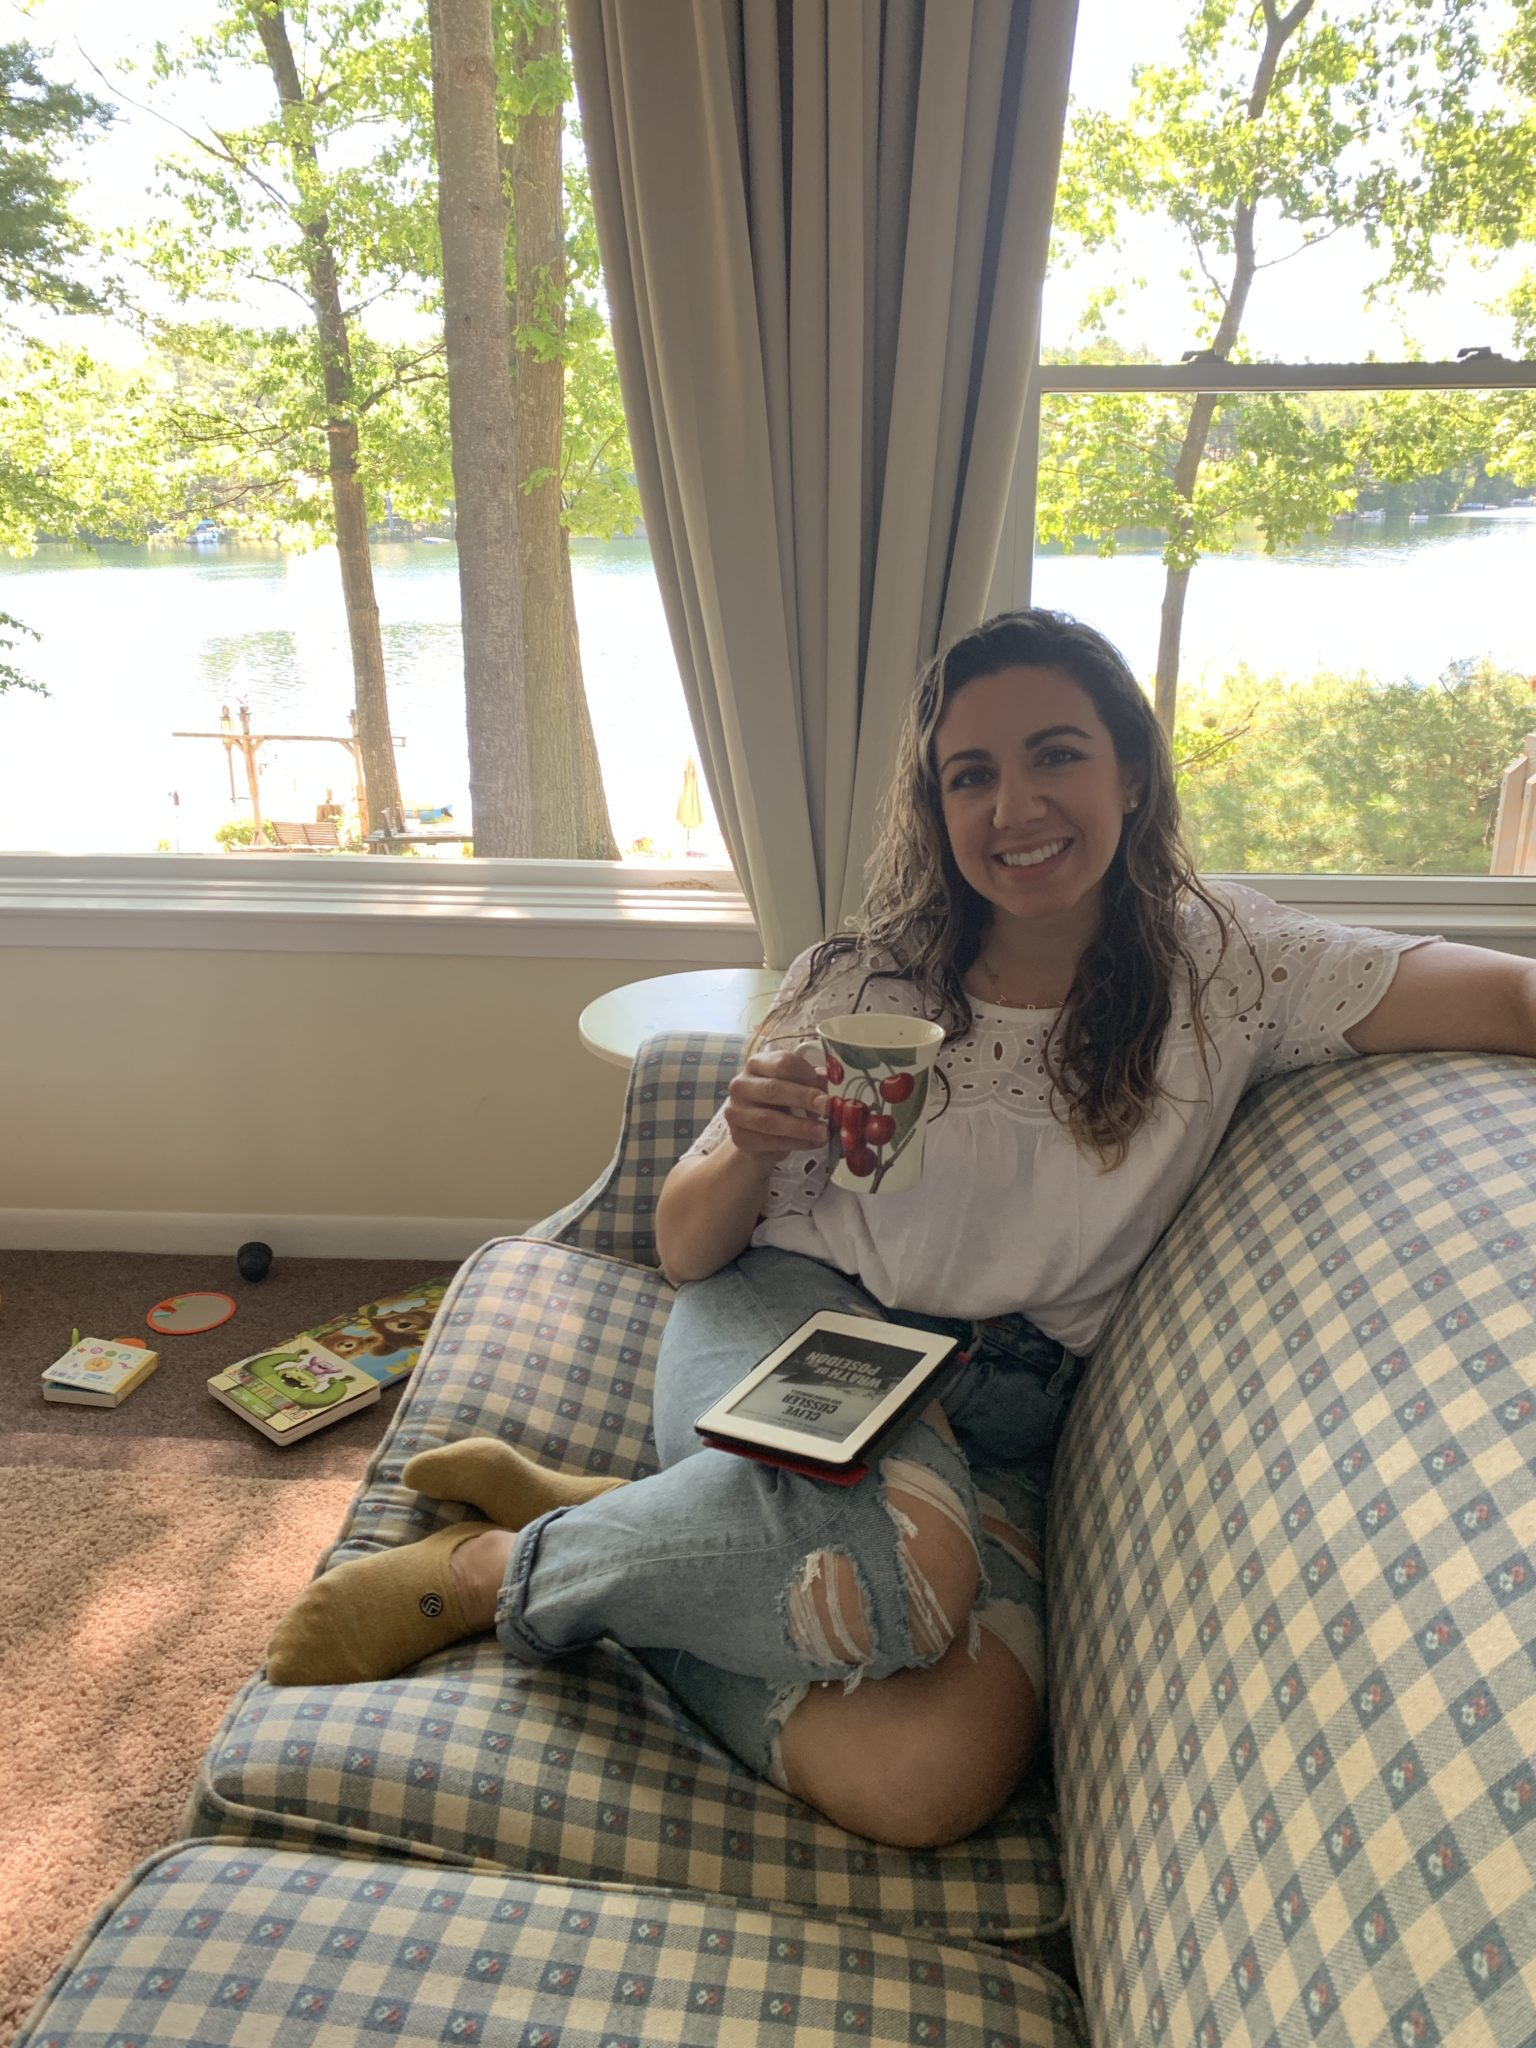 Traverse City by popular Chicago travel blog, Glass of Glam: image of a woman sitting on a couch and holding a coffee mug.